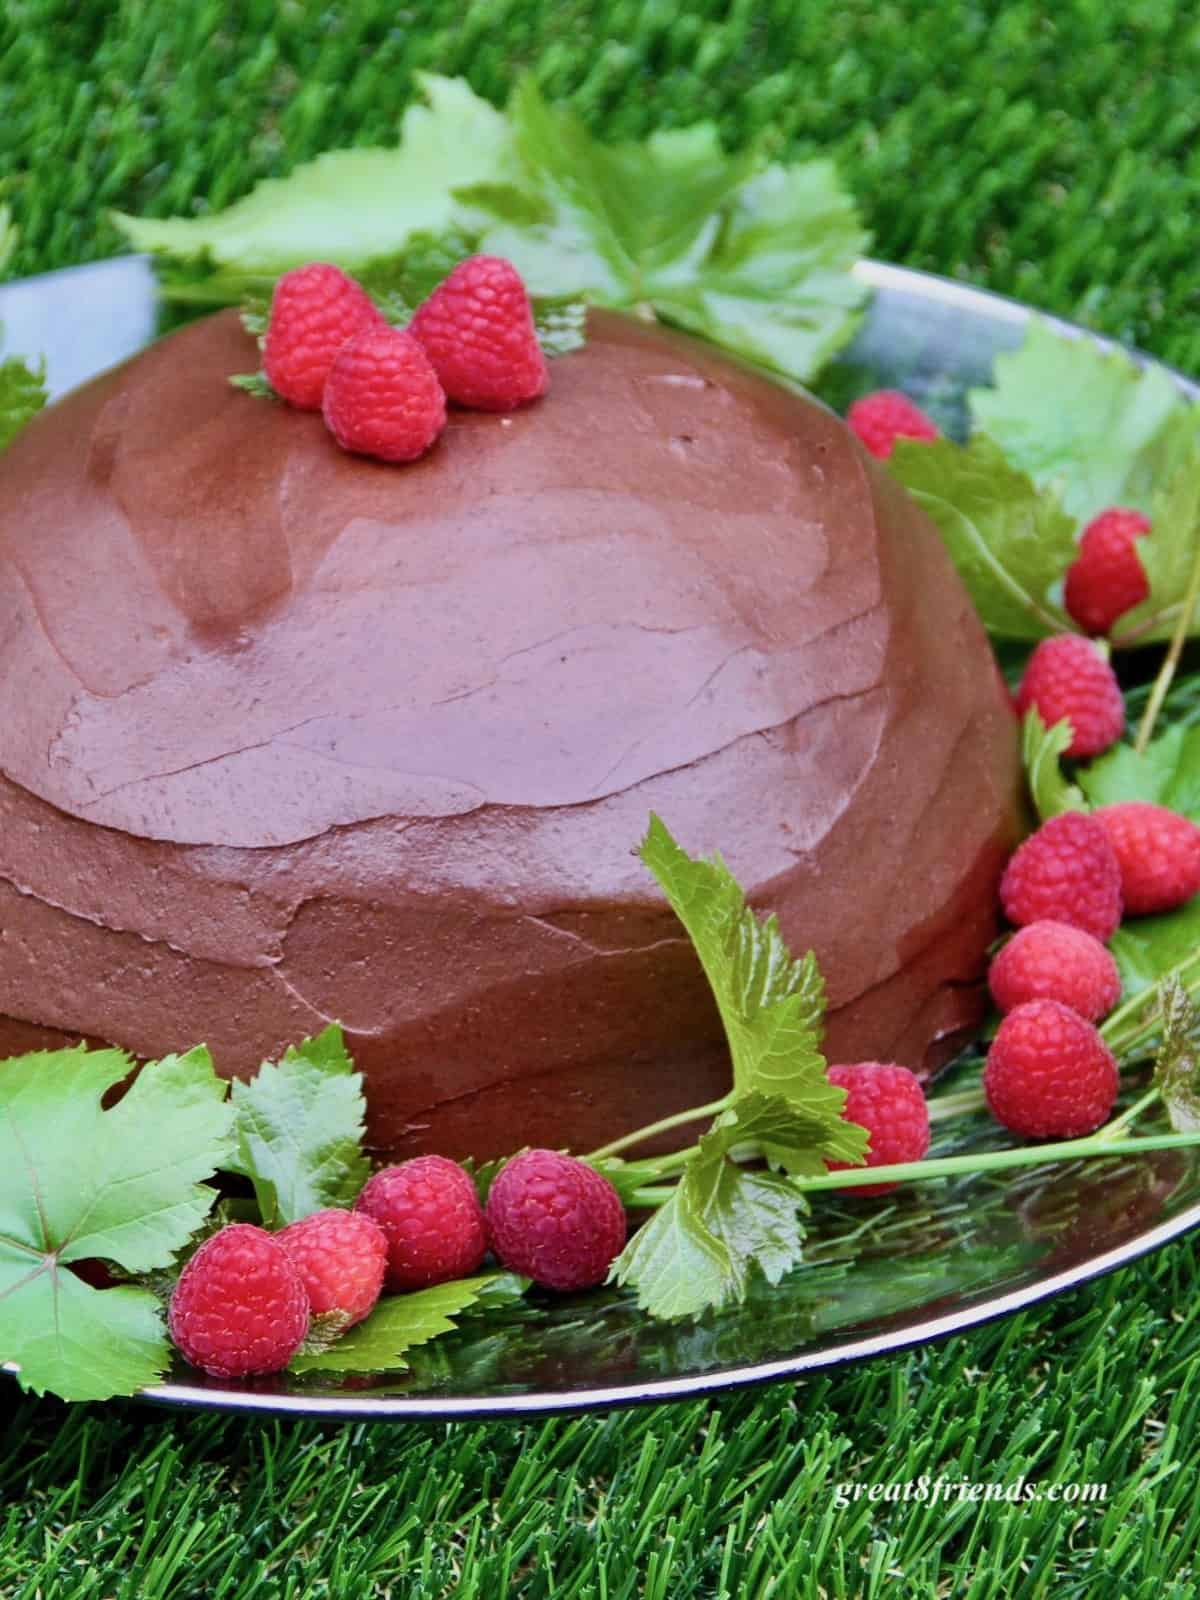 Zuccotto Cake with chocolate frosting garnished with raspberries and leaves.